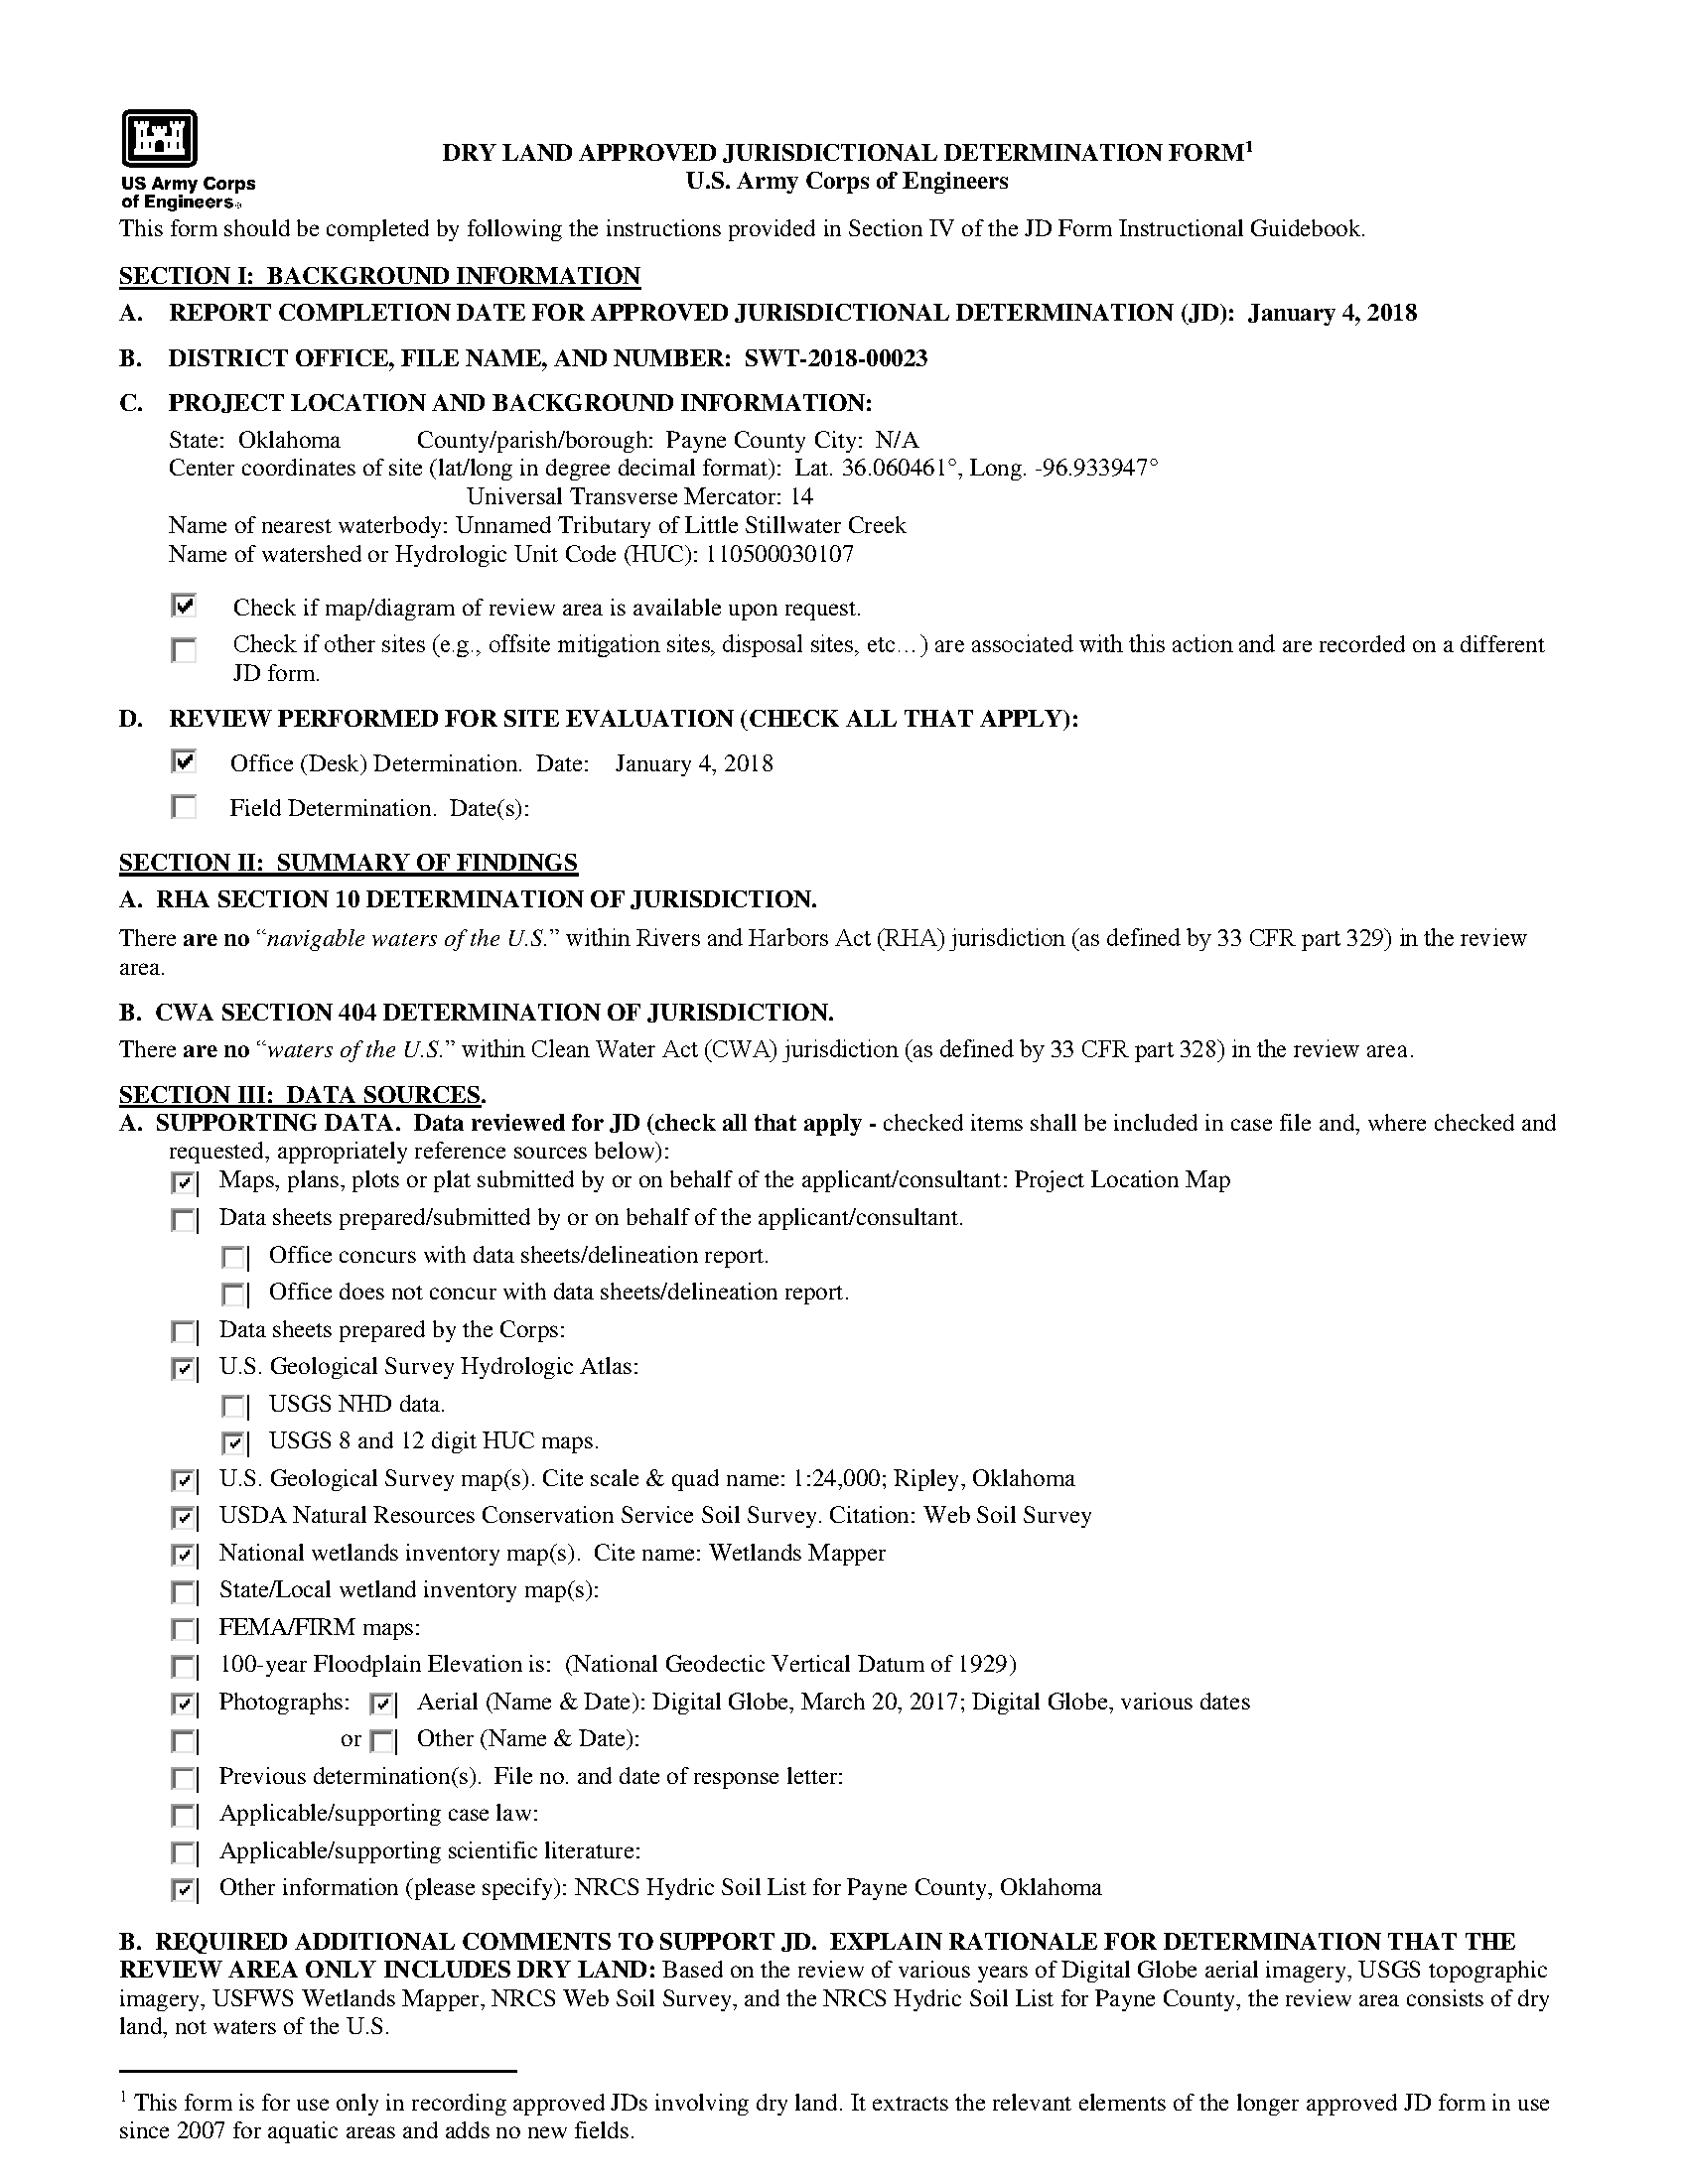 Dry land approved jurisdictional determination form - Project